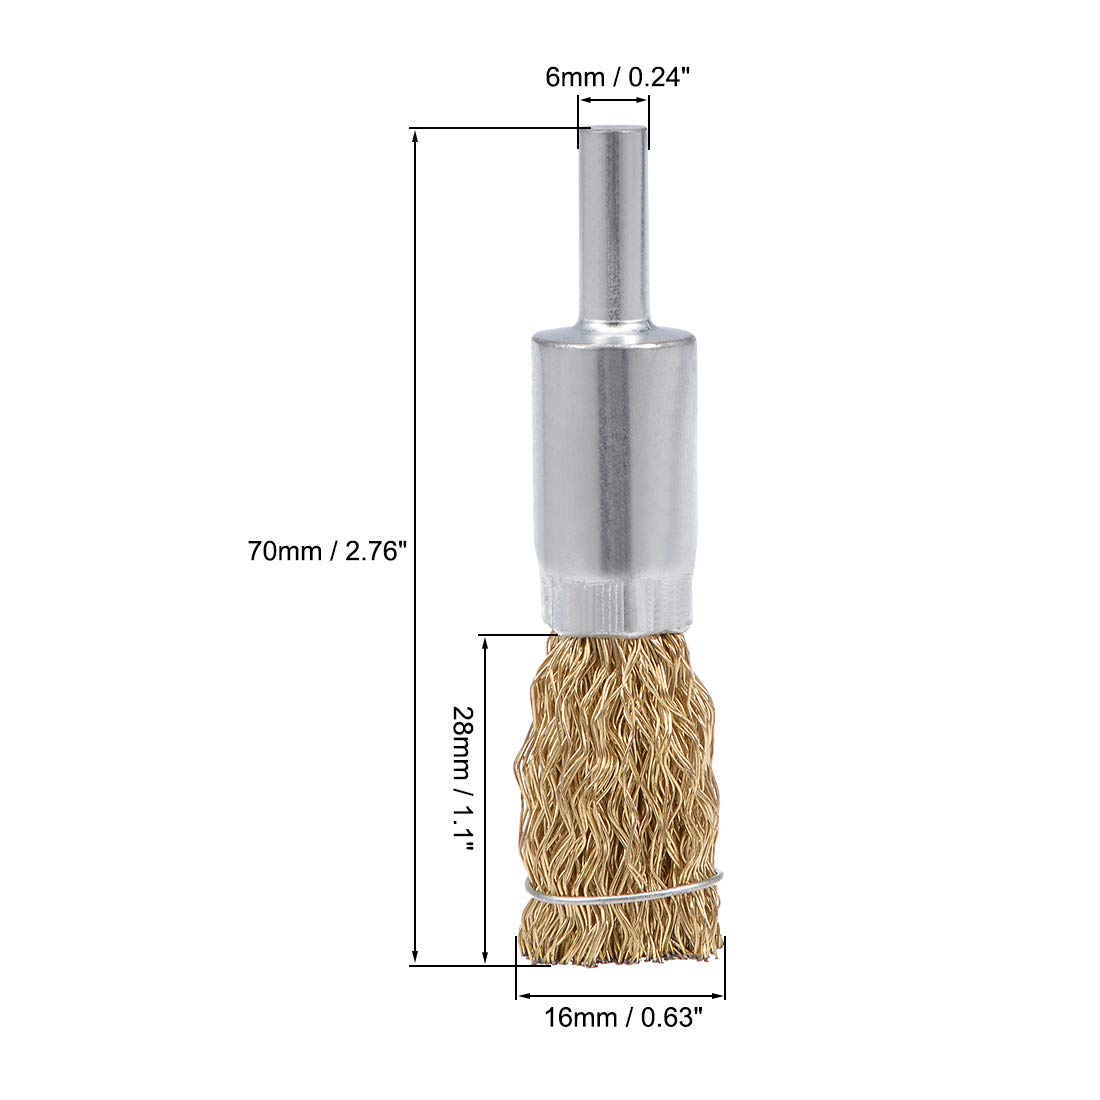 uxcell Wire Wheel Brush Cup Copper Plated Crimped Steel with Shank 0.012-inch Wire Dia Set of 10 25mm 10mm 30mm 12mm,16mm